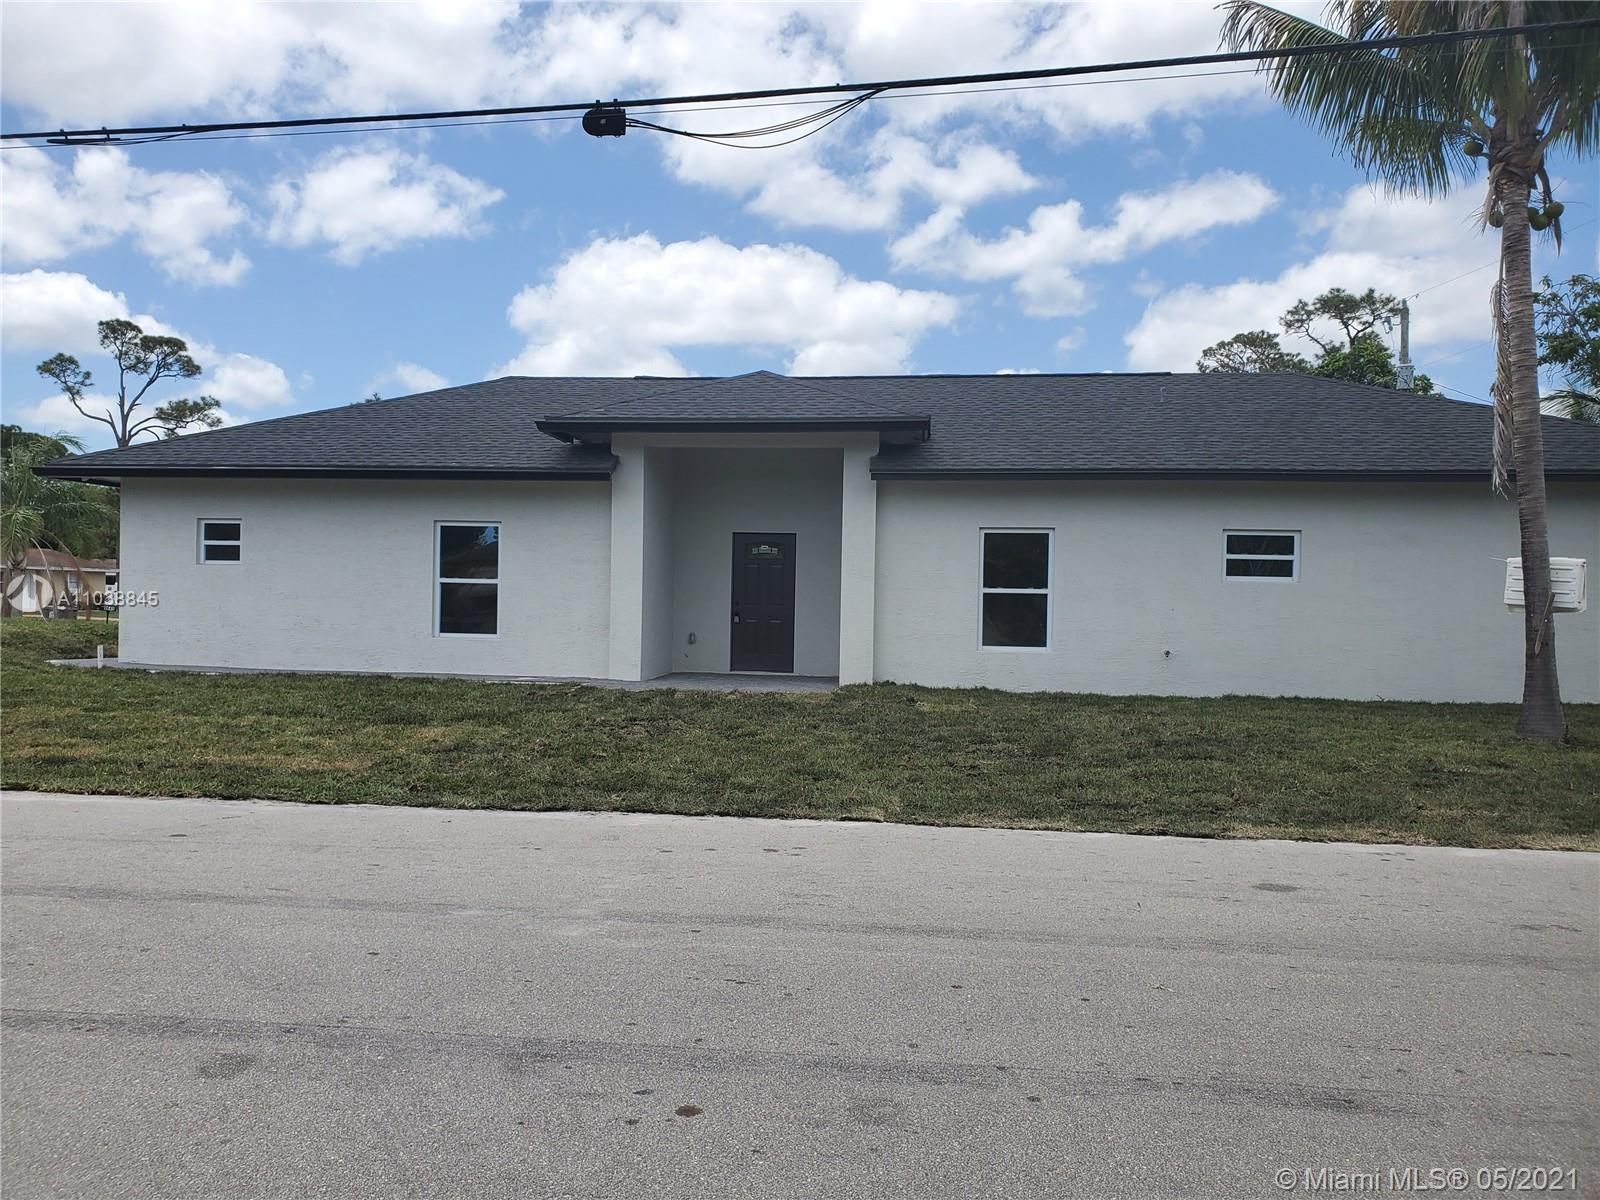 Beautiful, New Construction Home. Features 4 bedrooms, 2 bathrooms and 1 car garage. 12 x 24 tile th